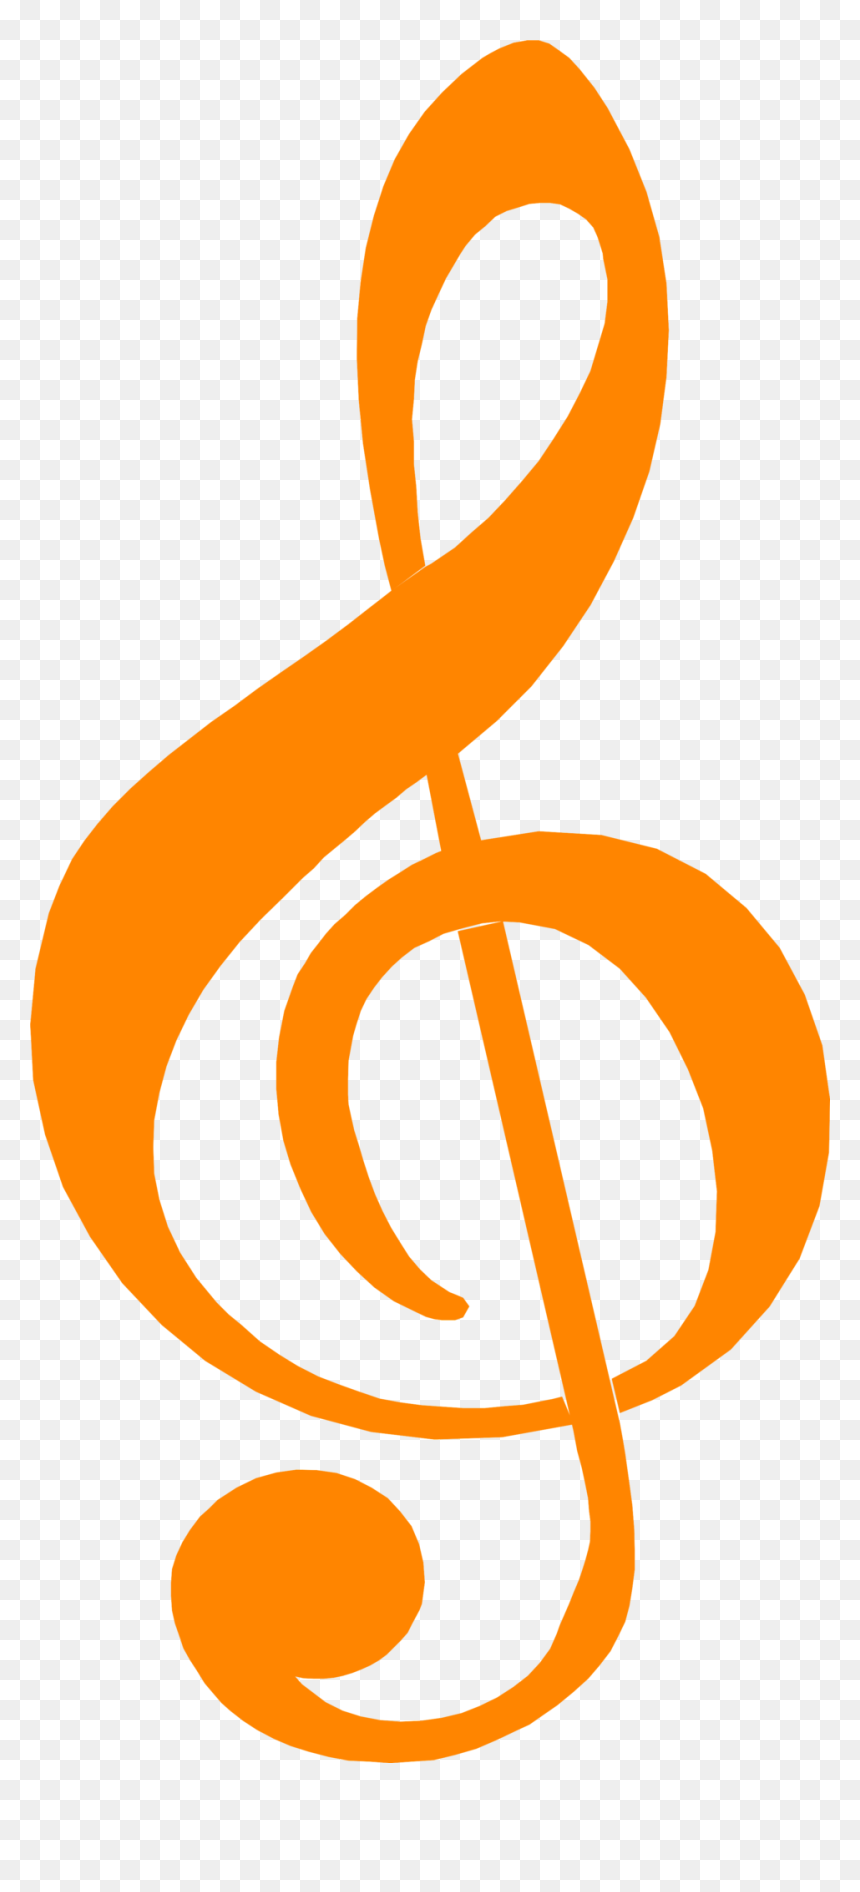 Music Symbols Png, Transparent Png